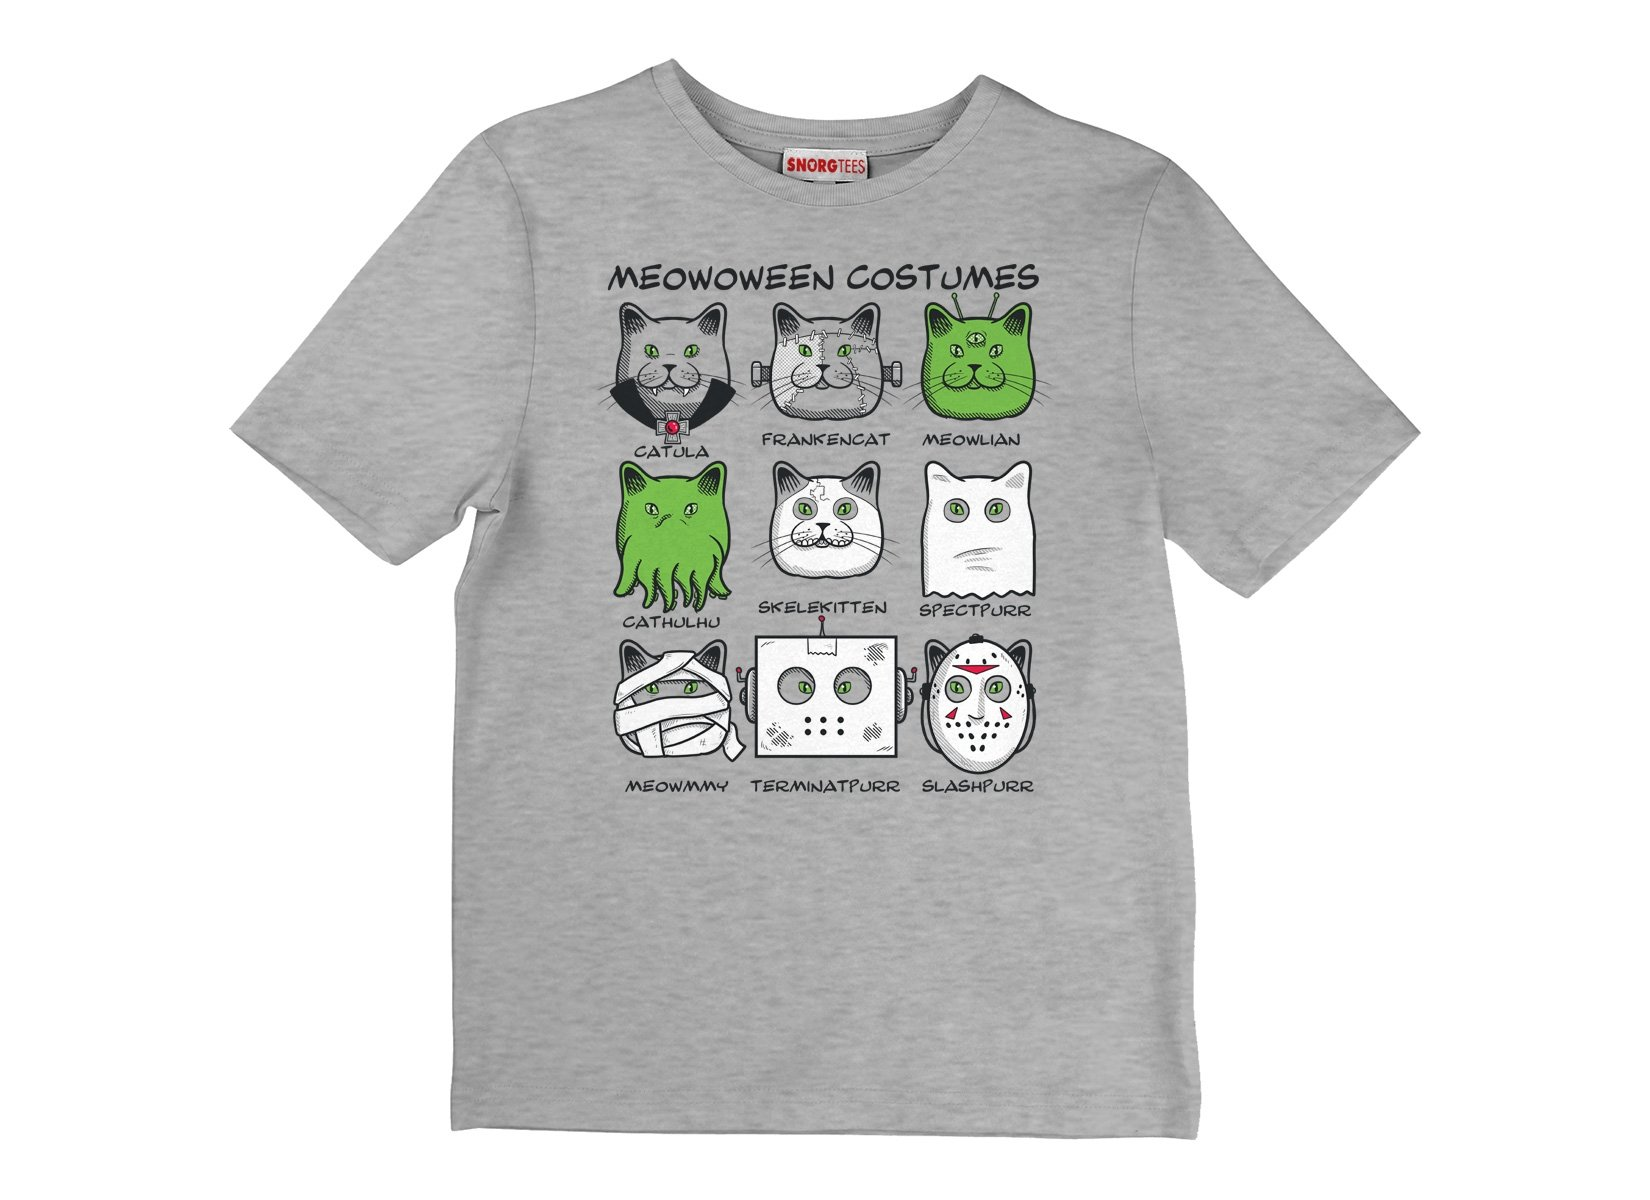 Meowoween Costumes on Kids T-Shirt